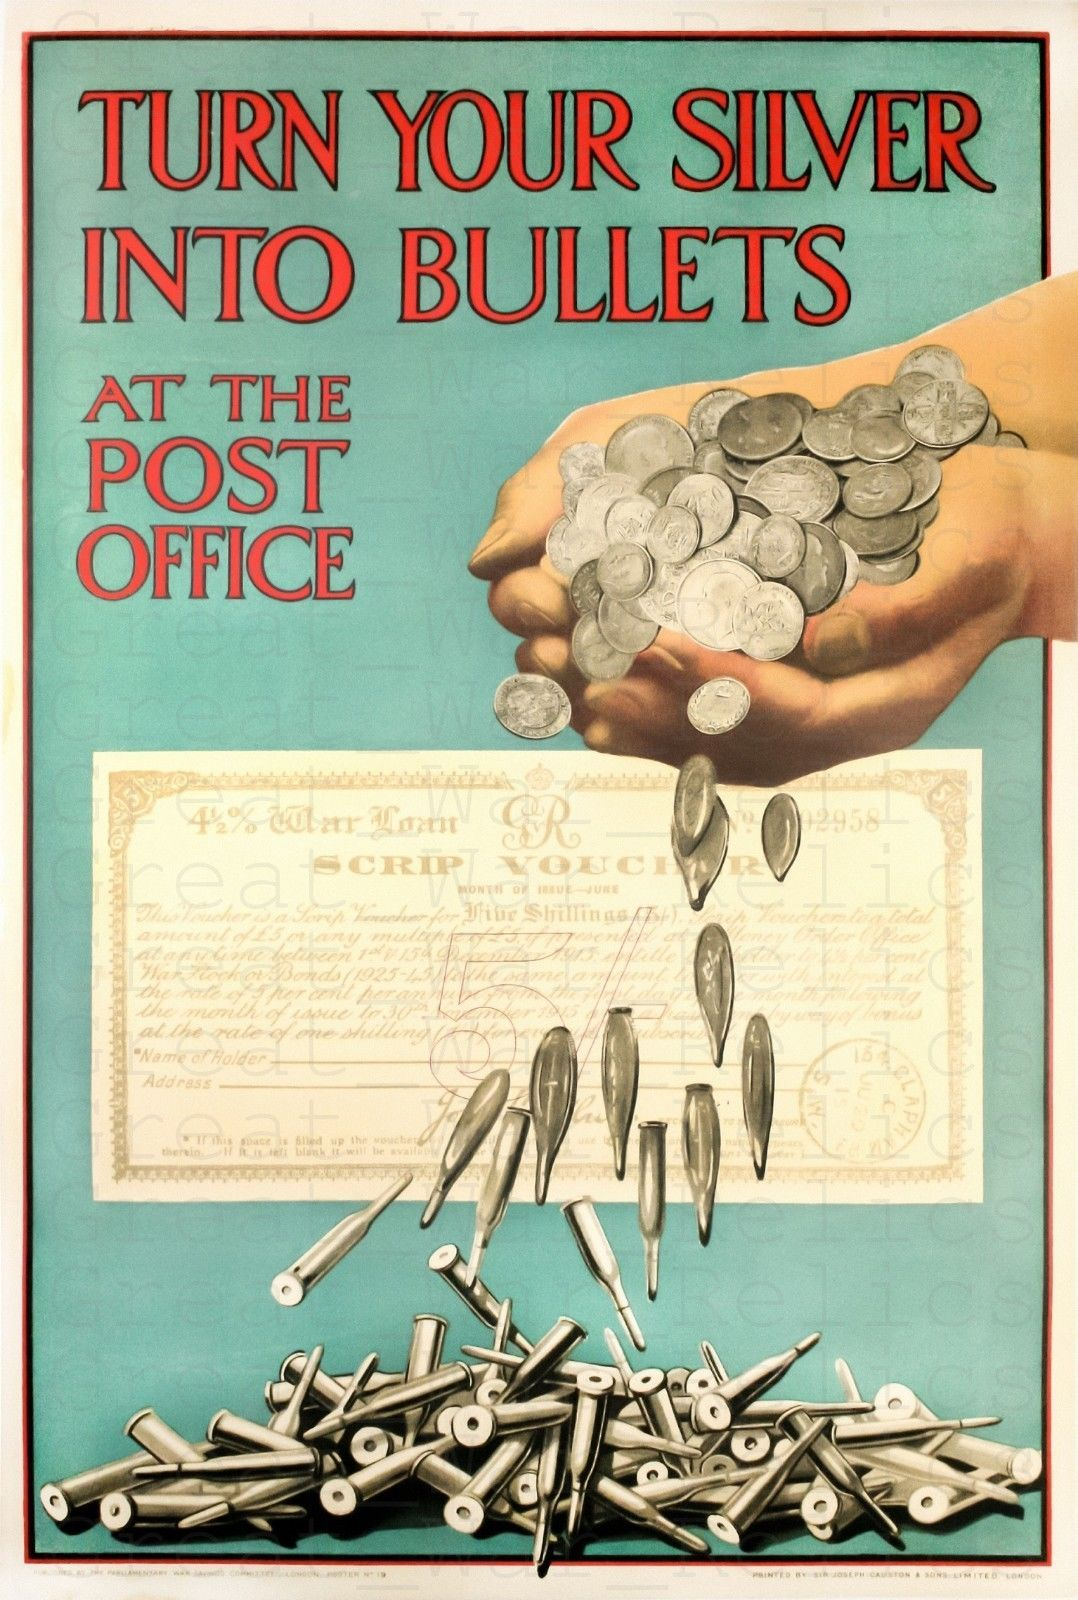 Details About American Propaganda Poster Turn Your Silver Into Bullets War Usa Agitation Ww1 Propaganda Posters Wwii Posters Propaganda Posters